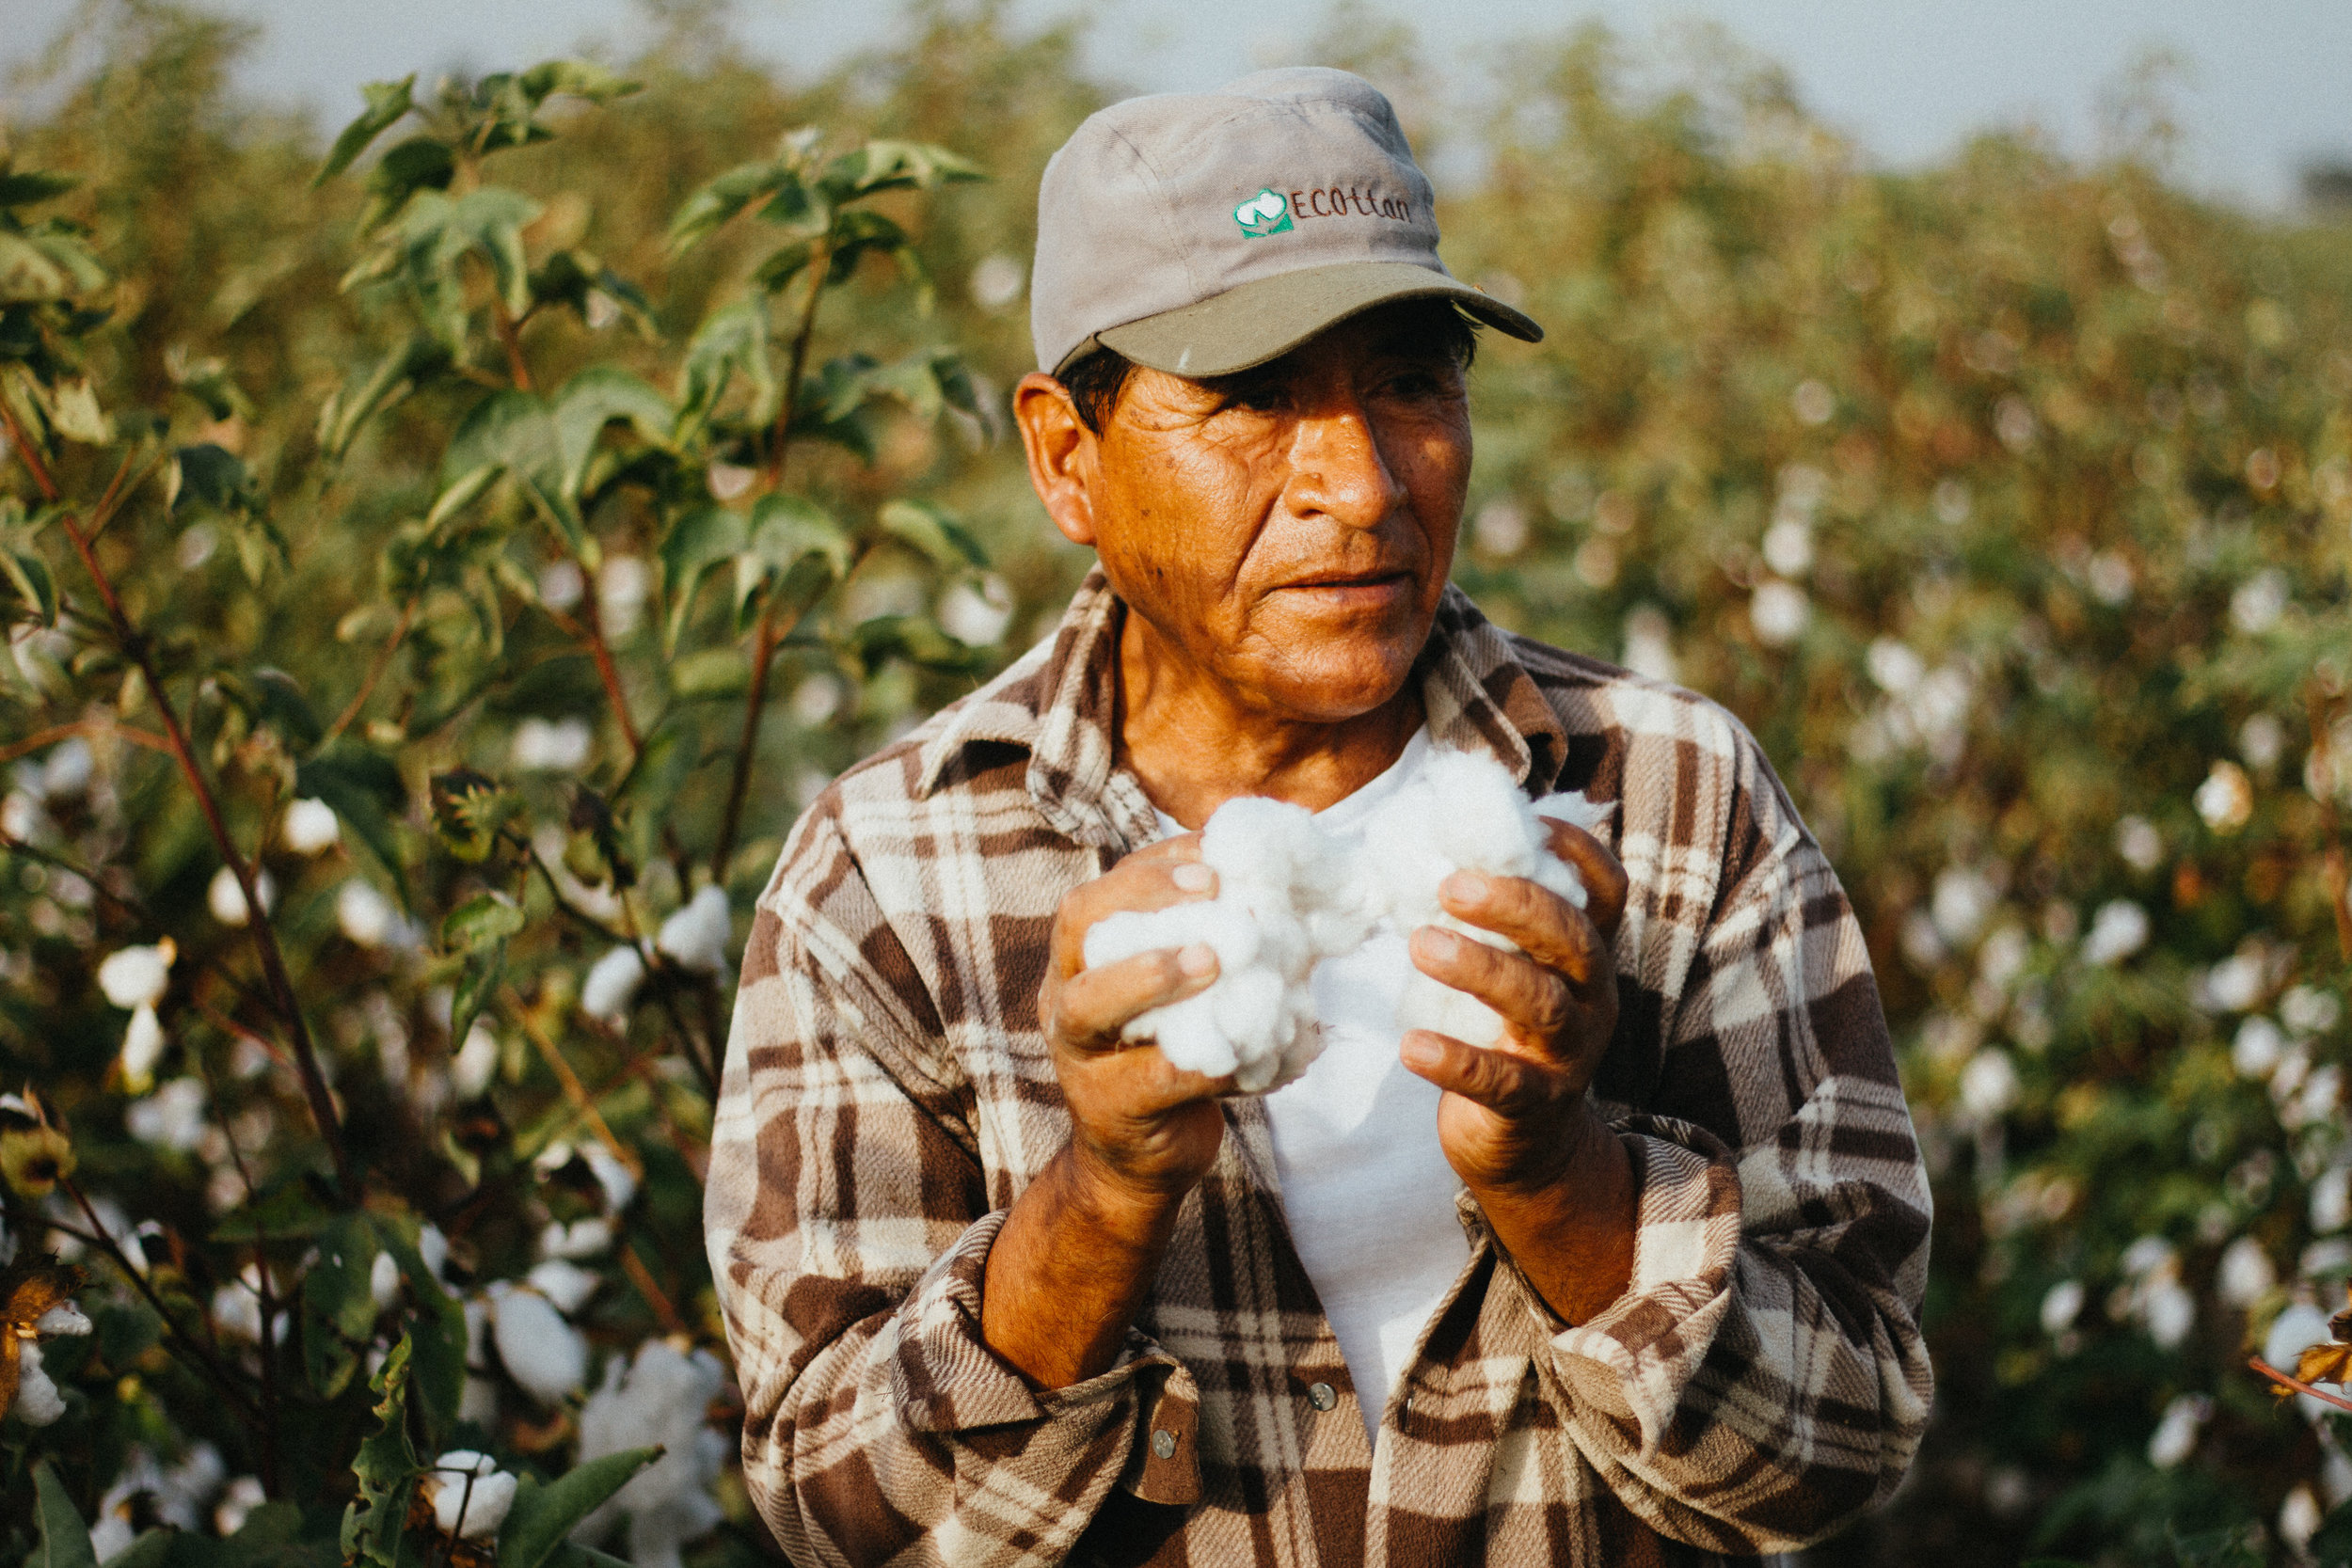 - SUPPORTING MAYSON MEANS SUPPORTING THE HEALTH AND WELL-BEING OF FARMERS LIKE LEONCIO AND THEIR FAMILIES. ORGANIC CLOTHES MADE FROM ORGANIC CROPS MEANS NO PESTICIDES, NO INSECTICIDES, AND NO CHEMICALS MAKING THEIR WAY INTO THEIR BODY OR INTO THEIR HOMES. USDA/GOTS/EU CERTIFIED ORGANIC.